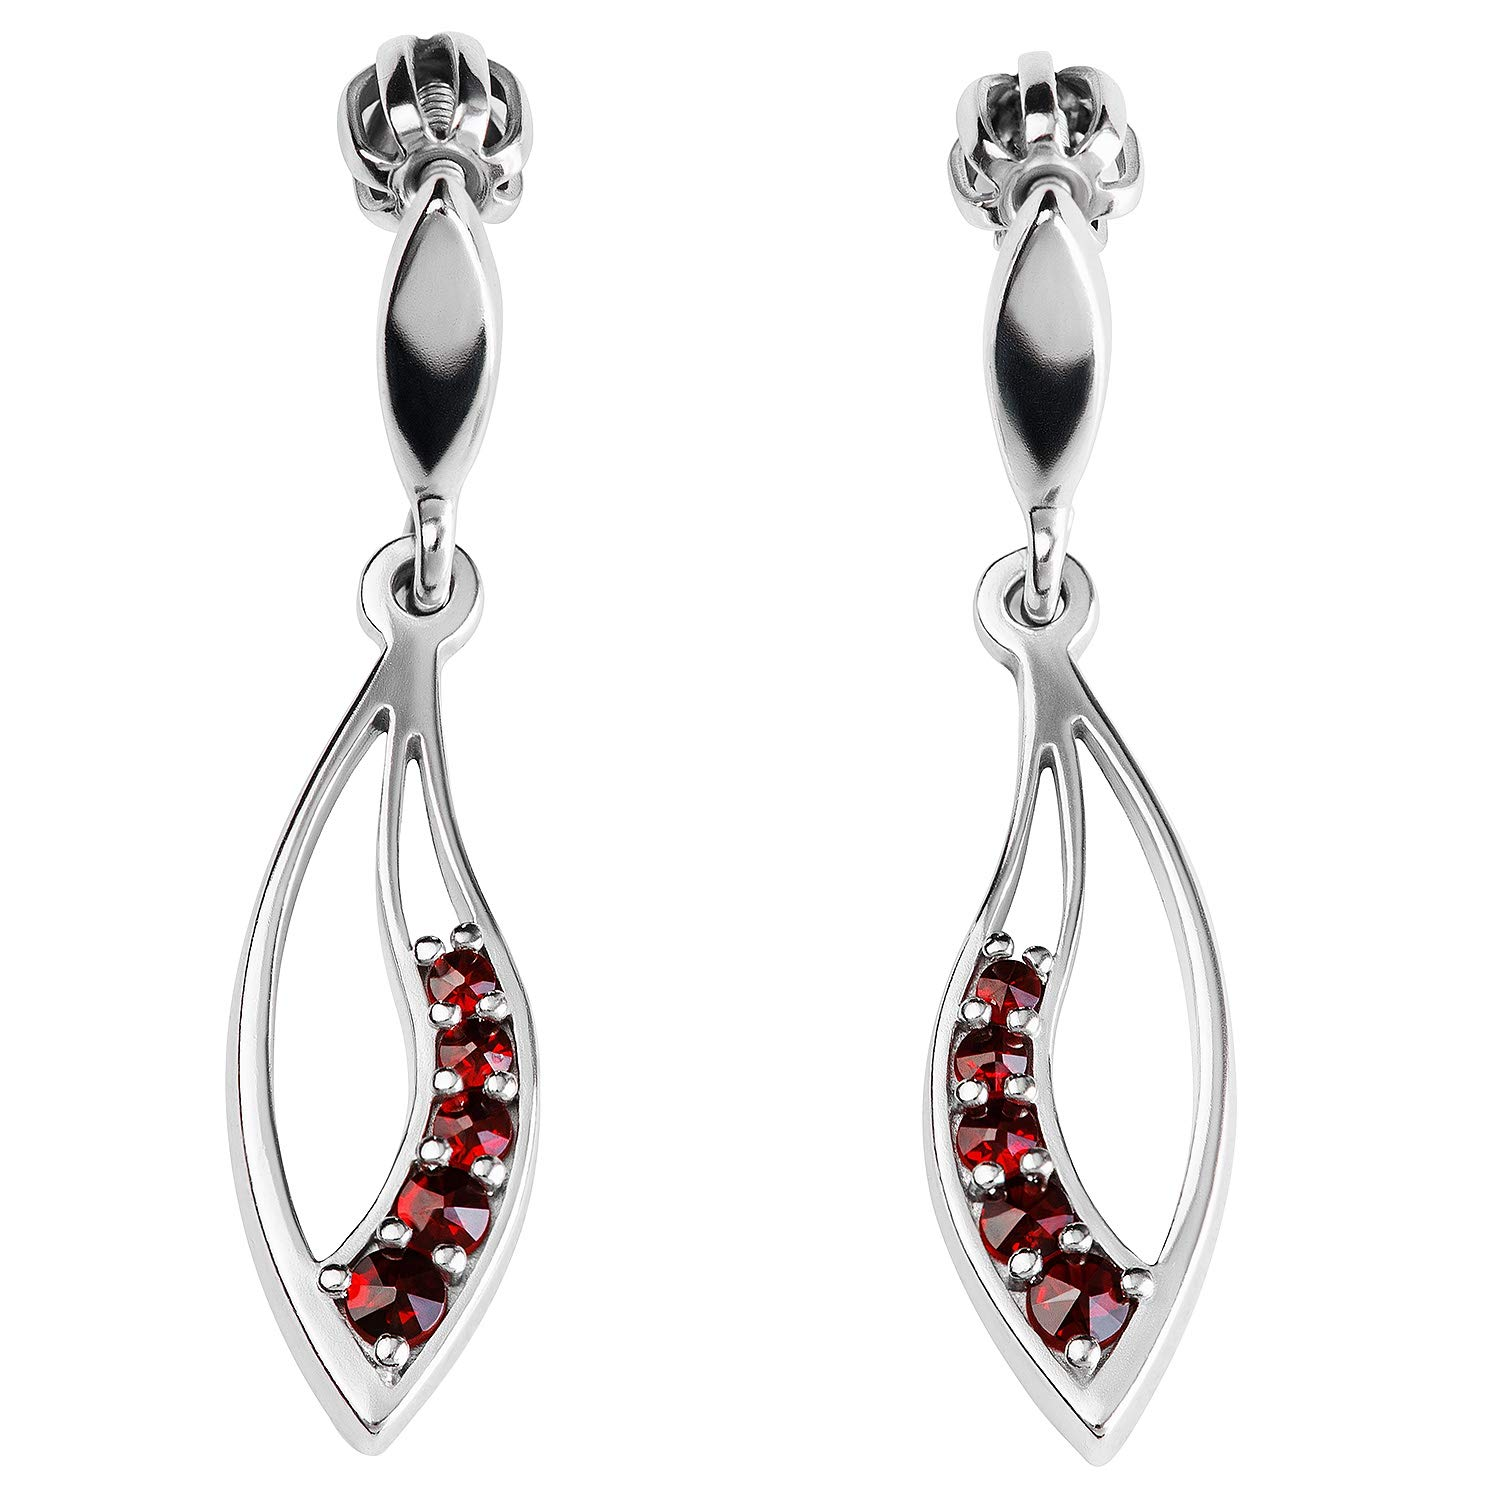 925 Sterling Silver Leaf Shaped Earrings with Natural Garnet Stones, 23x7mm by Verdster